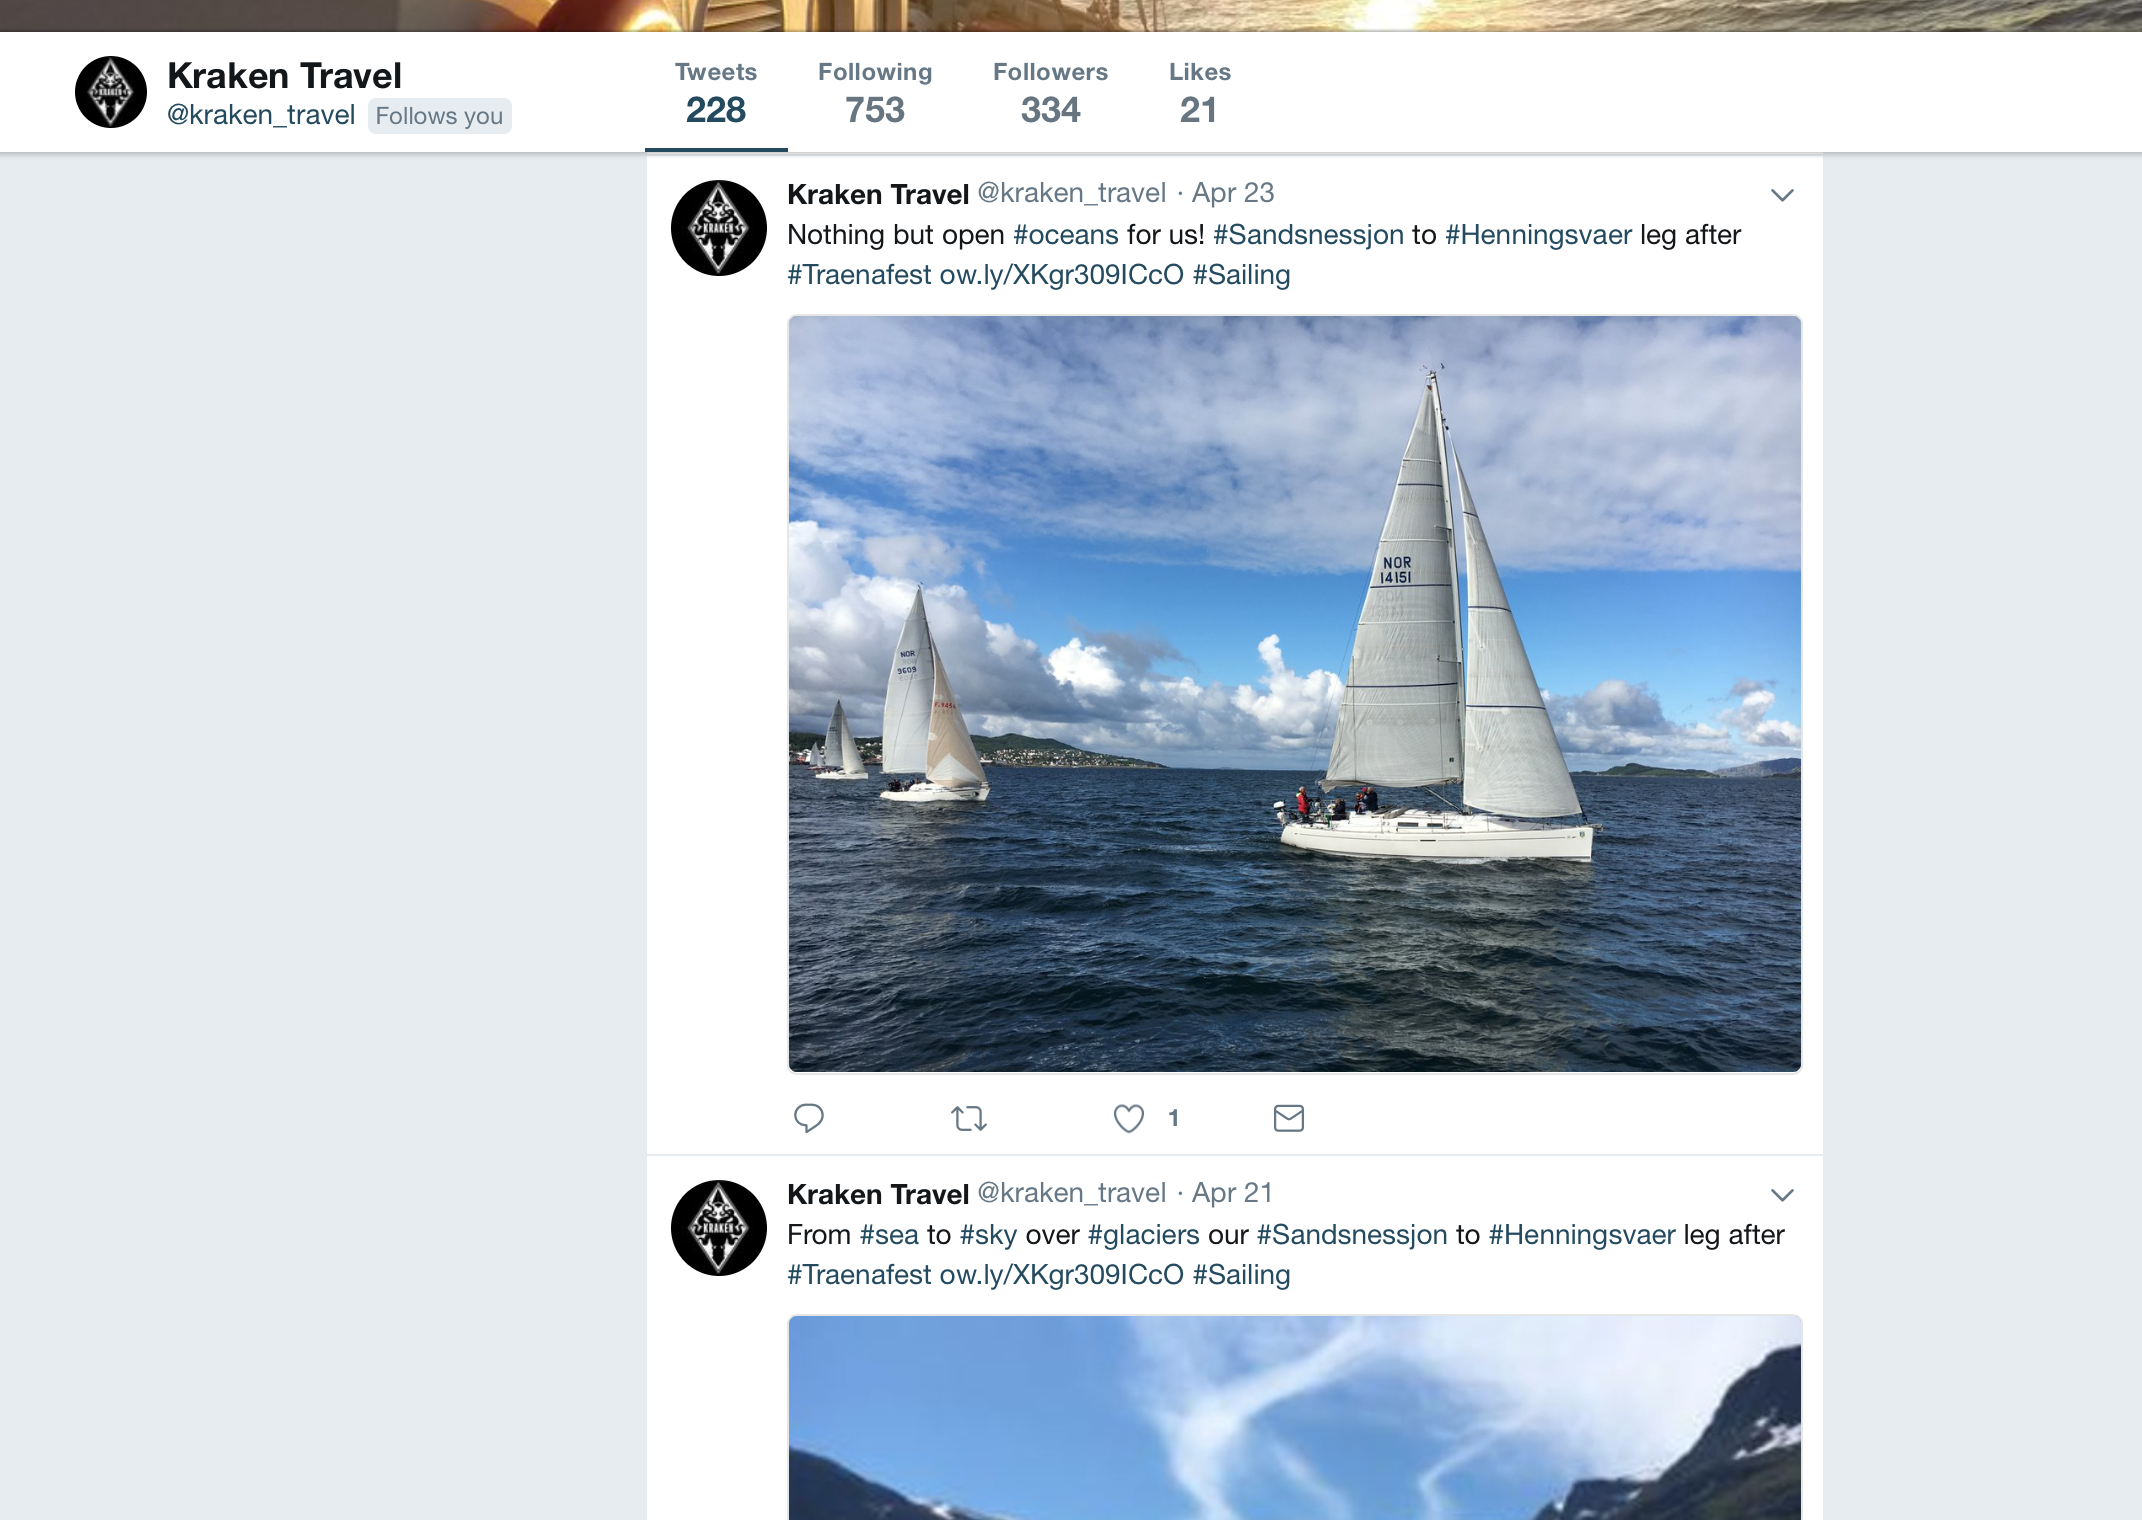 @Kraken_travel on Twitter